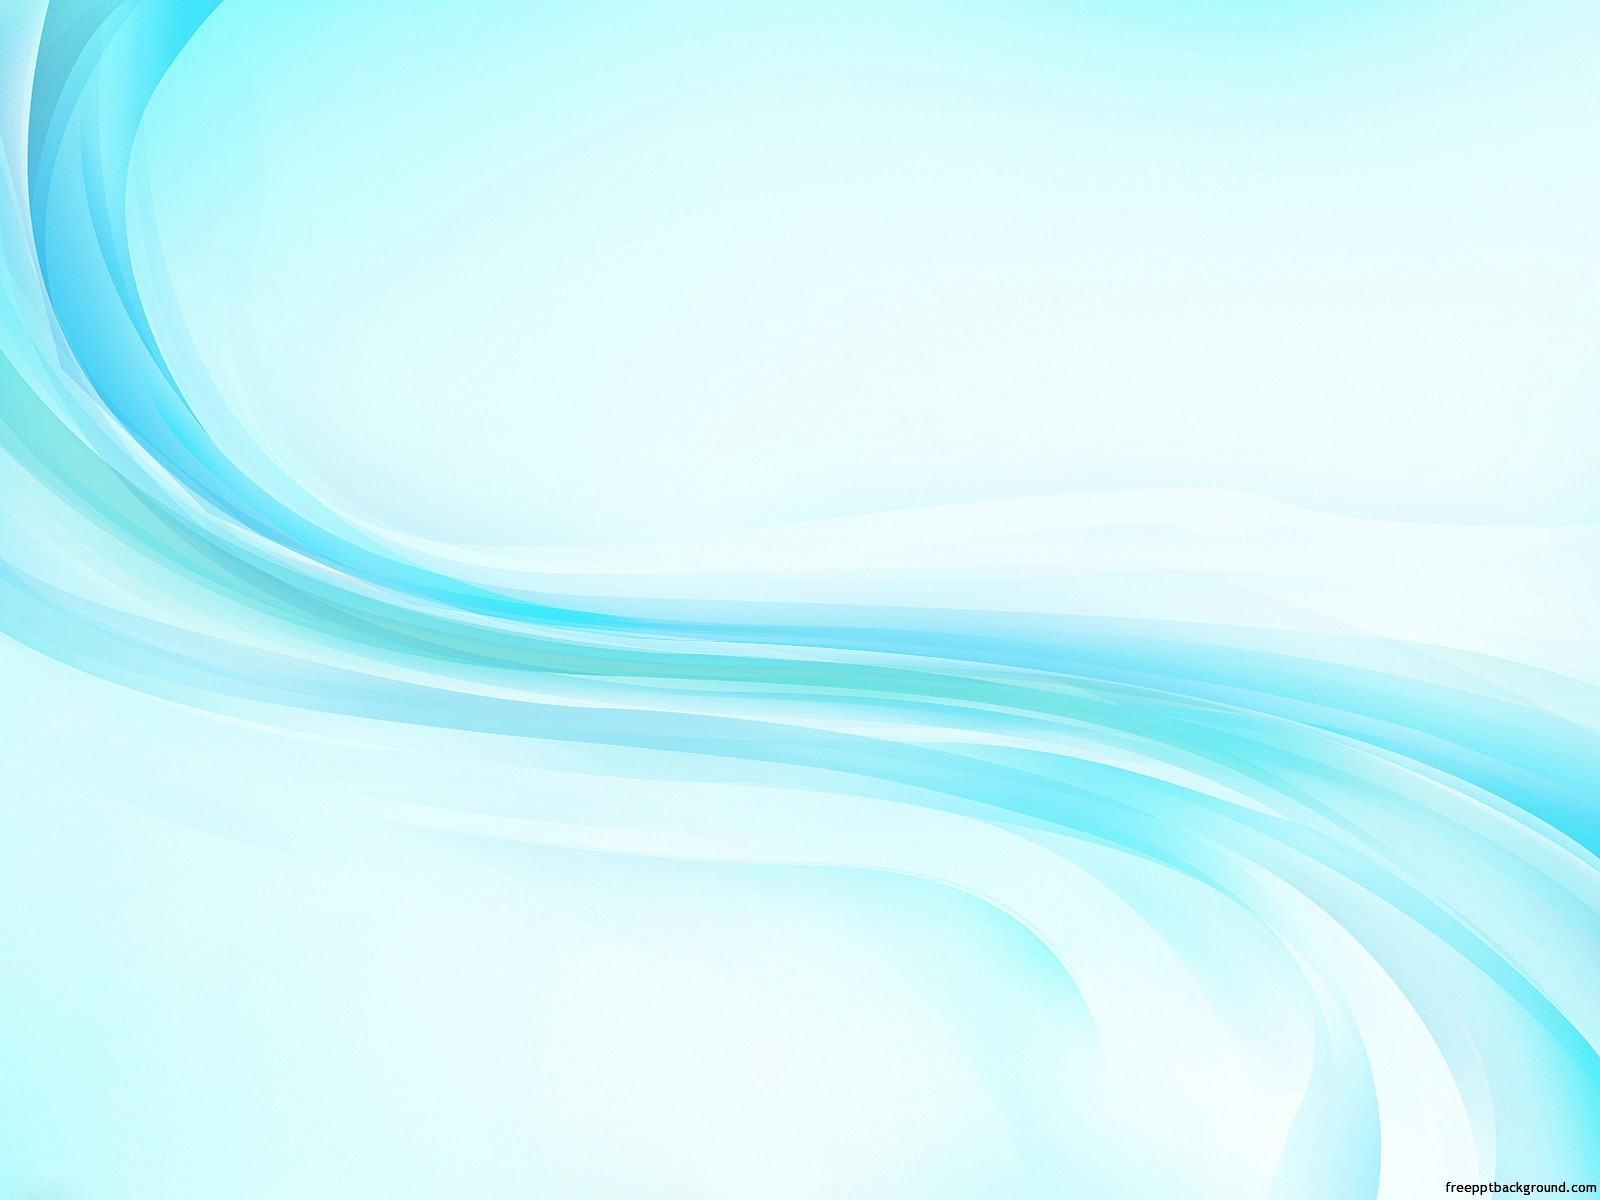 Silver Light Blue Free PPT Backgrounds for your PowerPoint Templates